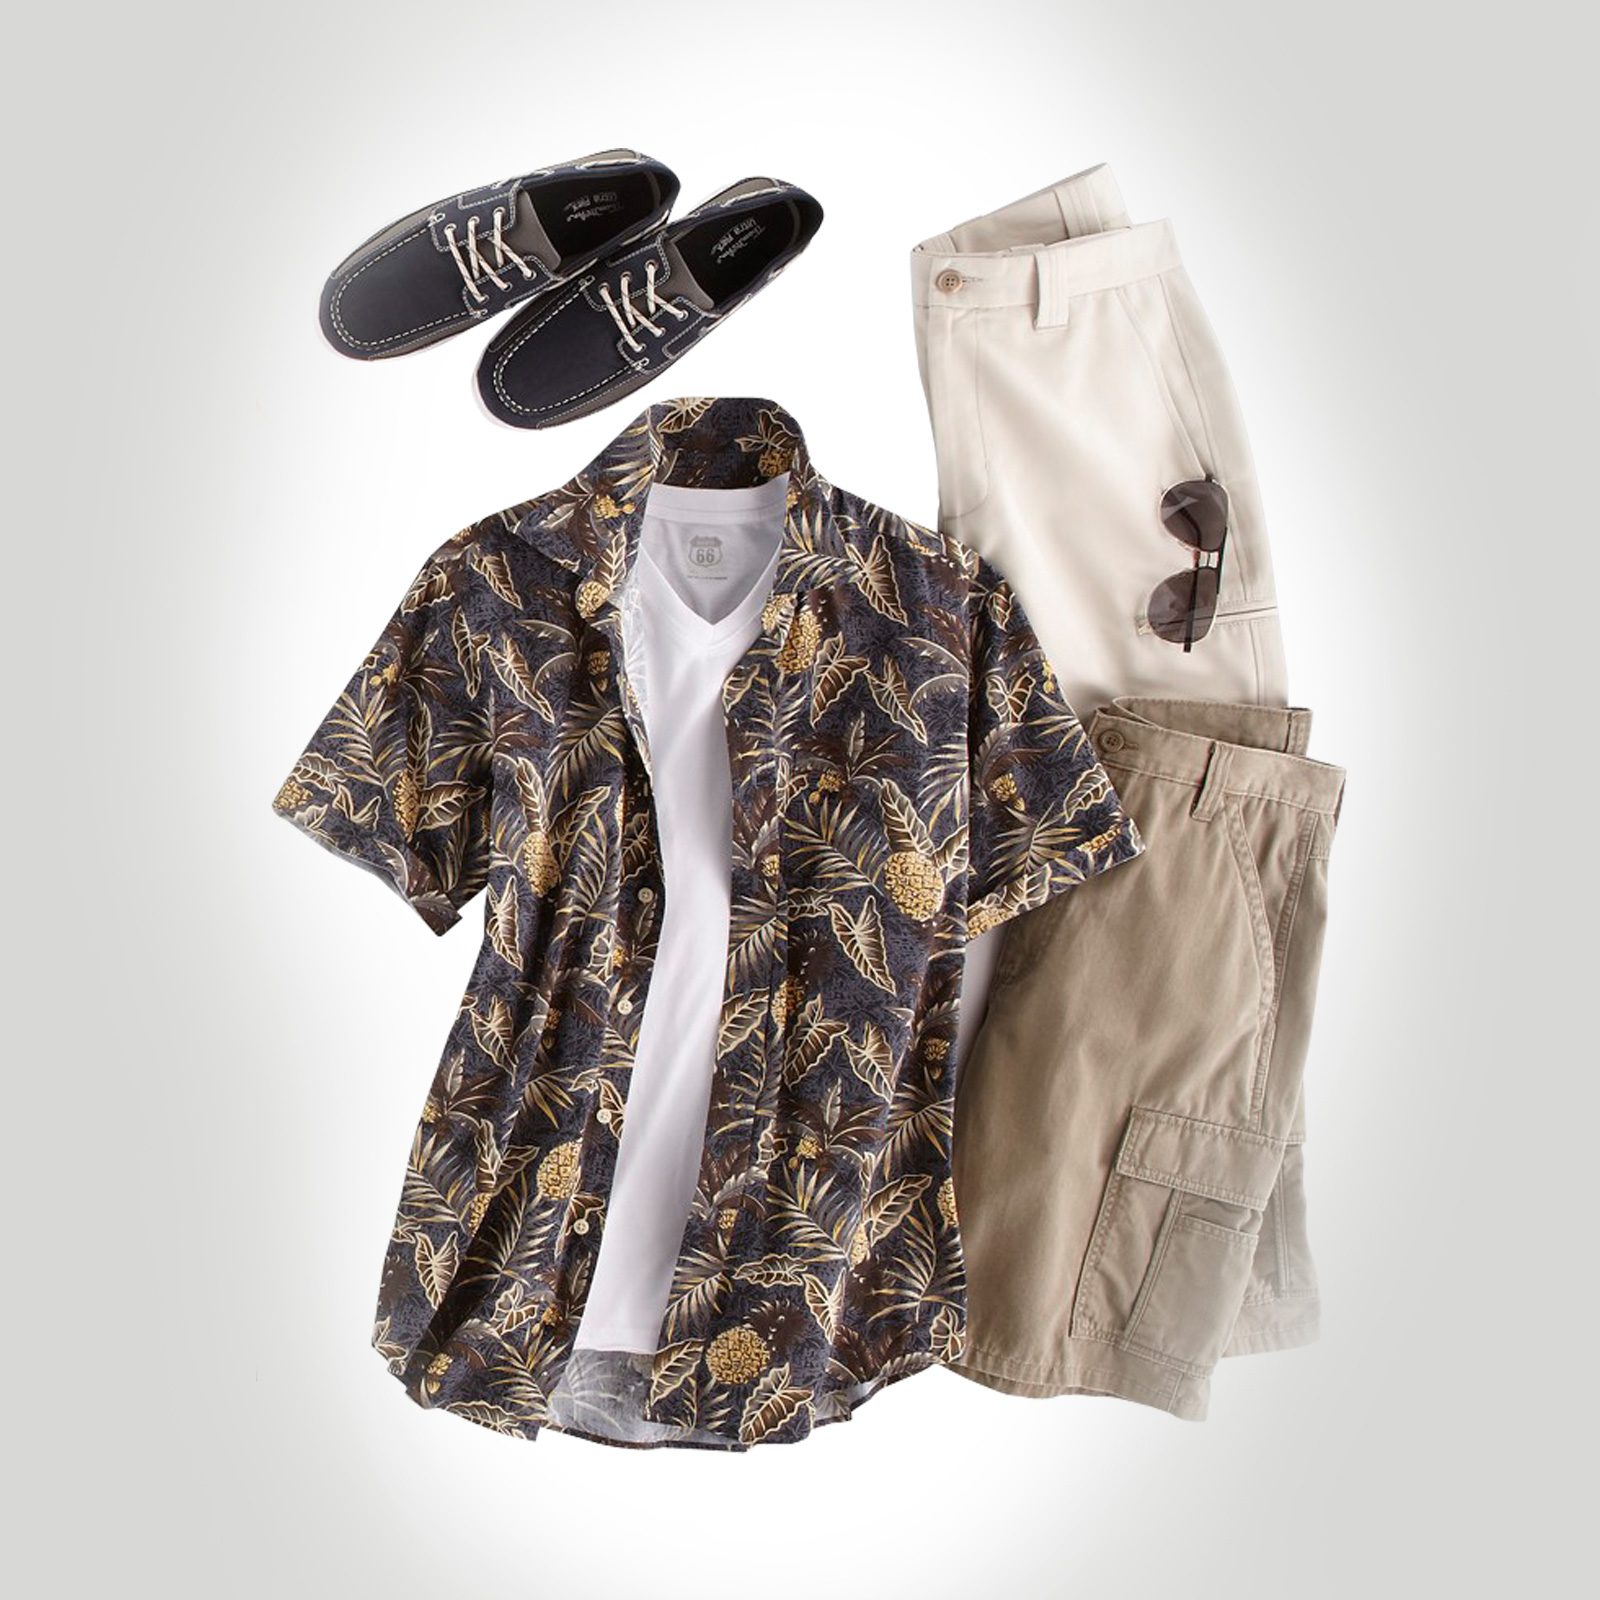 Tropicalia Outfit at Kmart.com